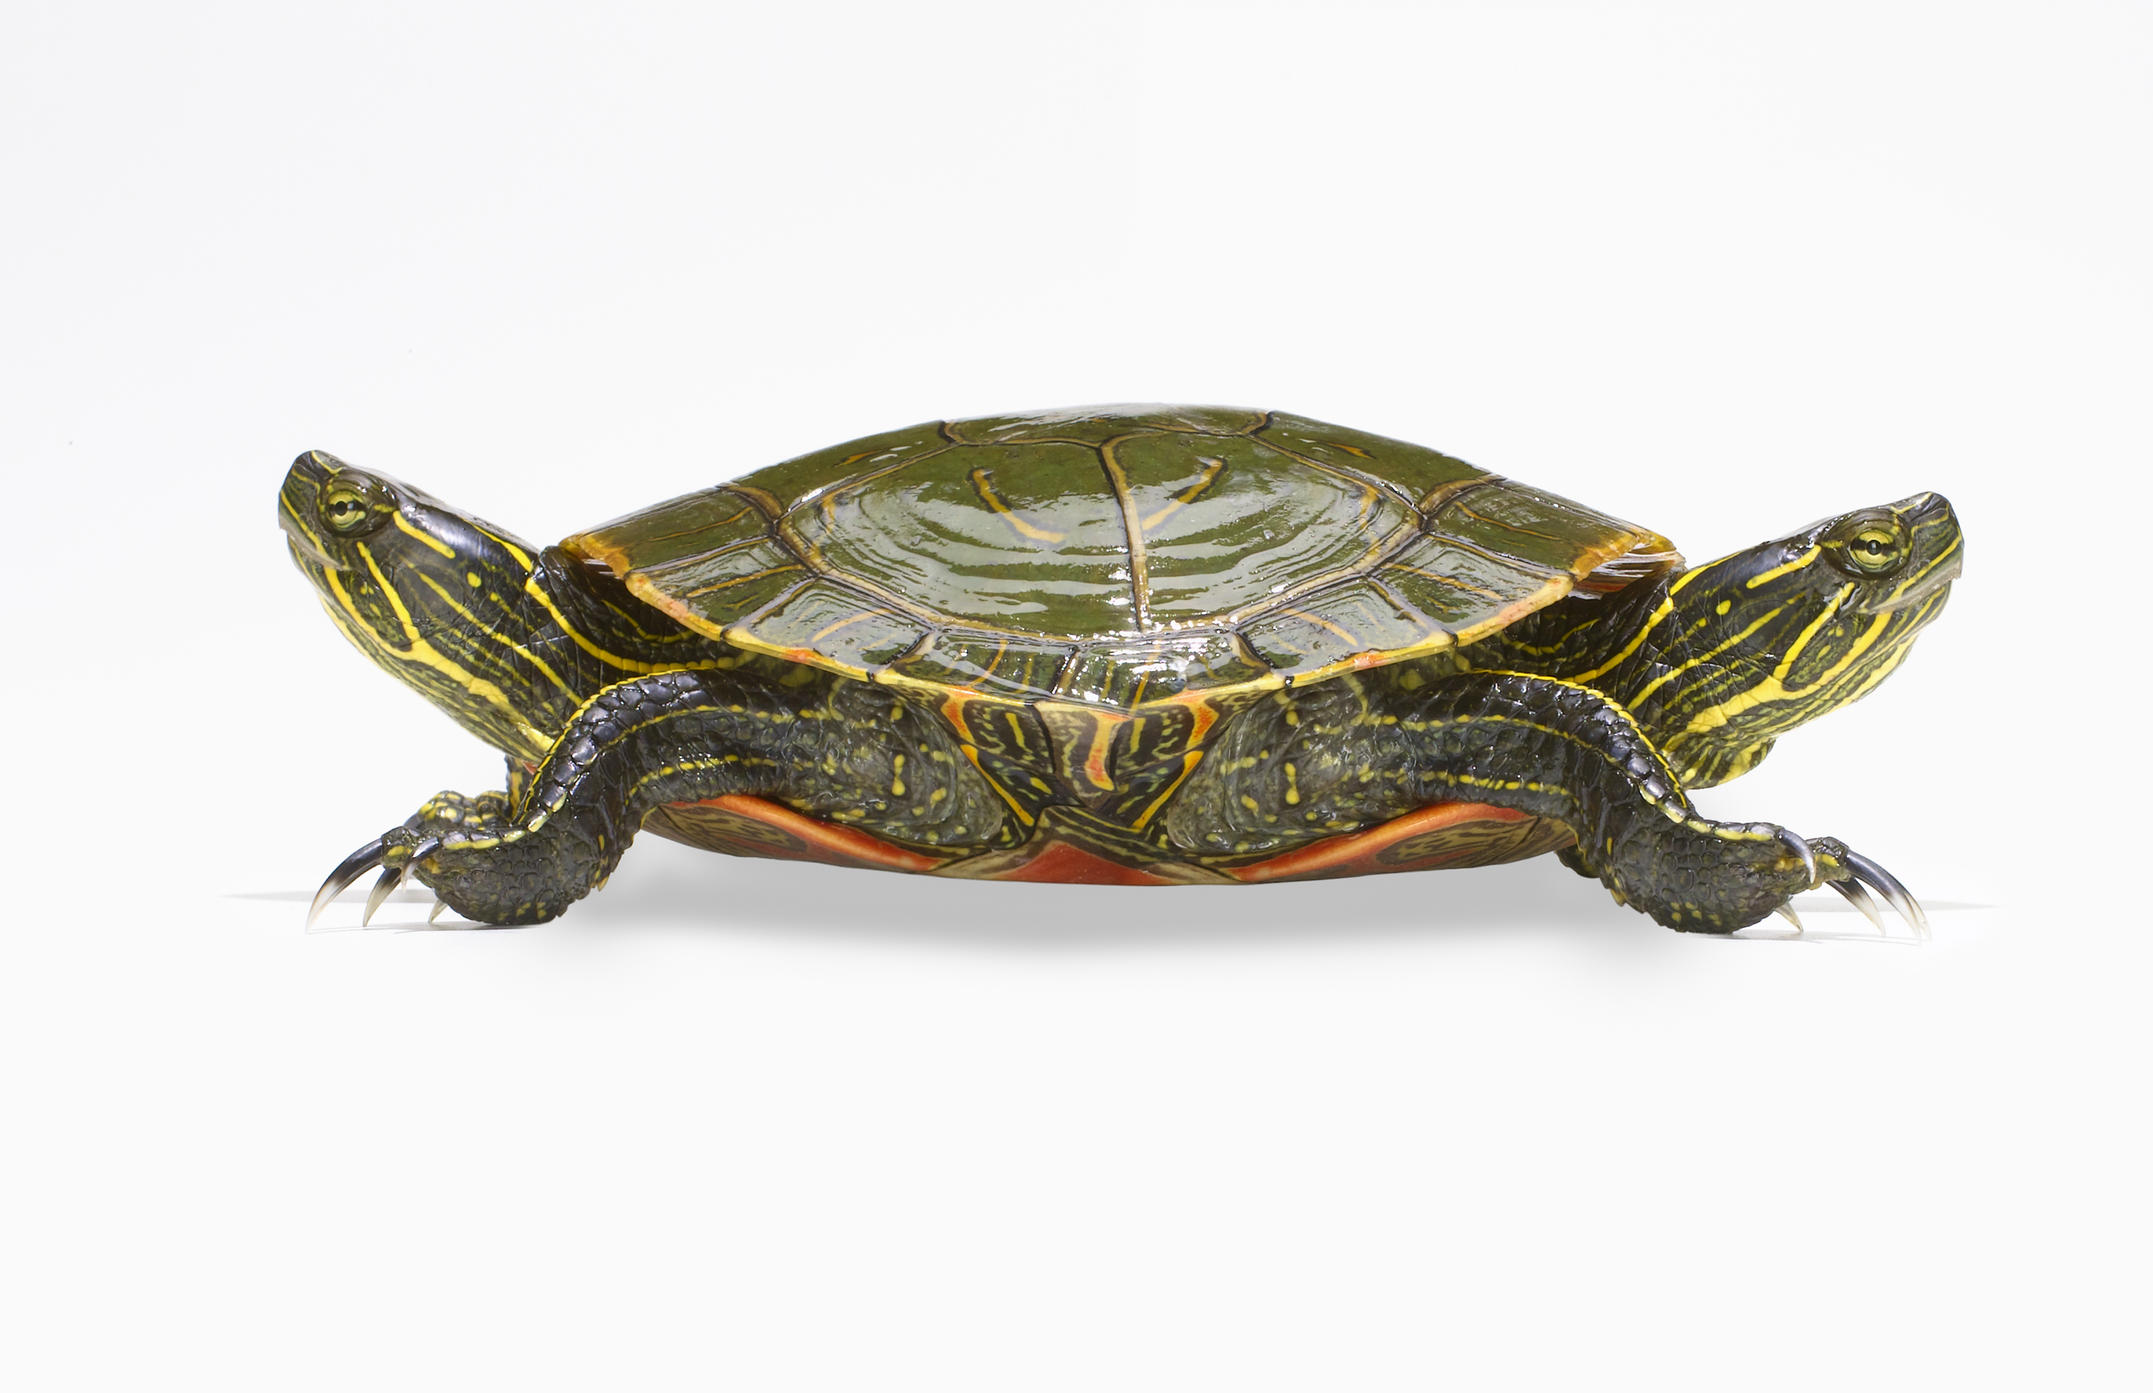 Two-headed turtle.